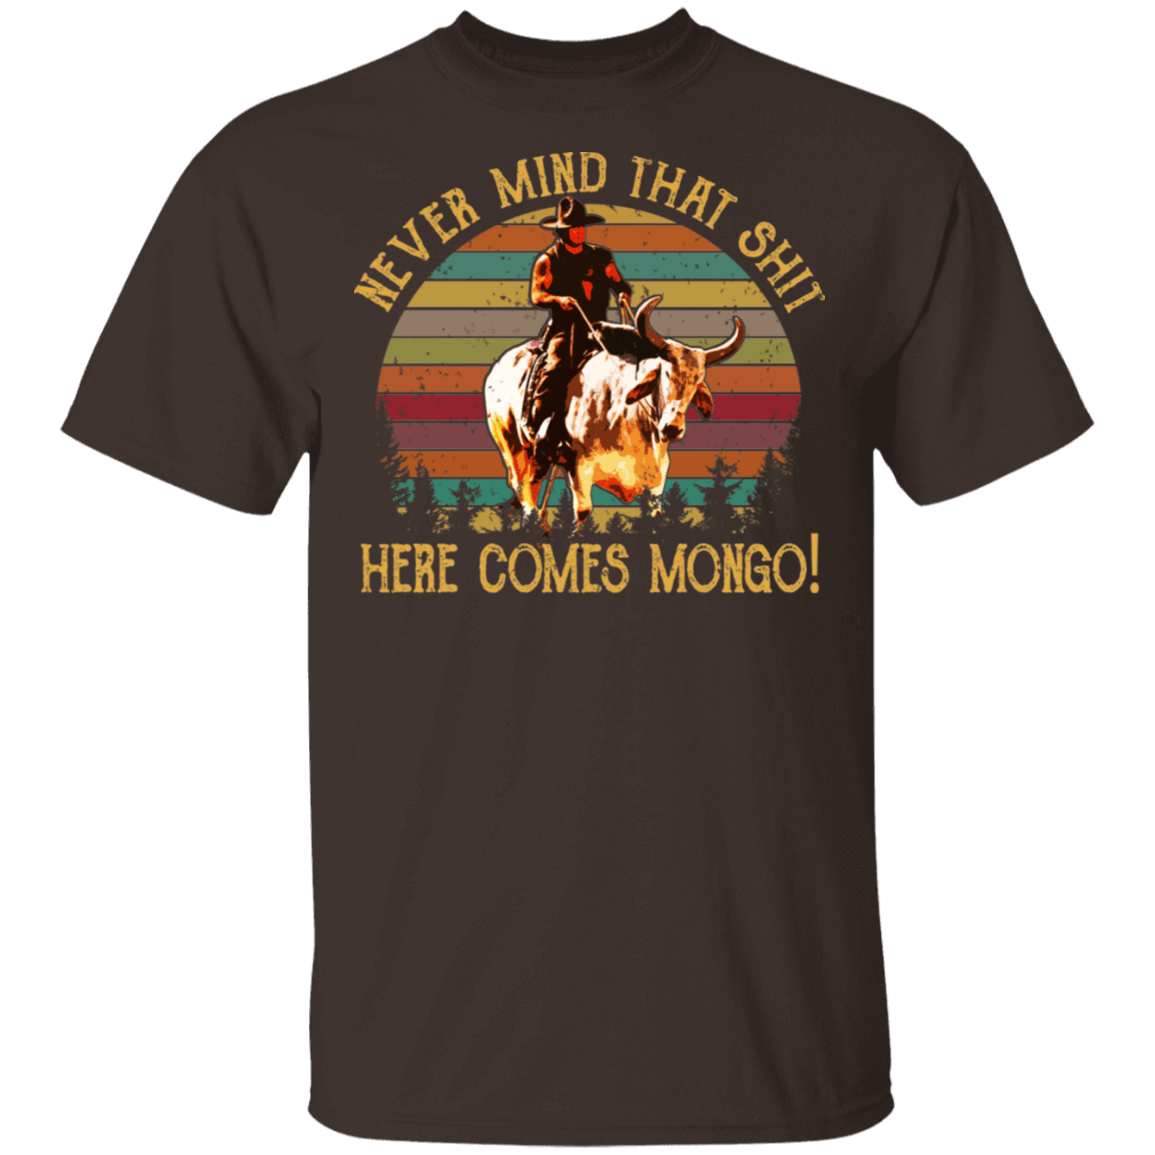 Blazing Saddles Never Mind That Shit Here Comes Mongo T-Shirts, Hoodies, Tank 22-2283-79658447-12087 - Tee Ript